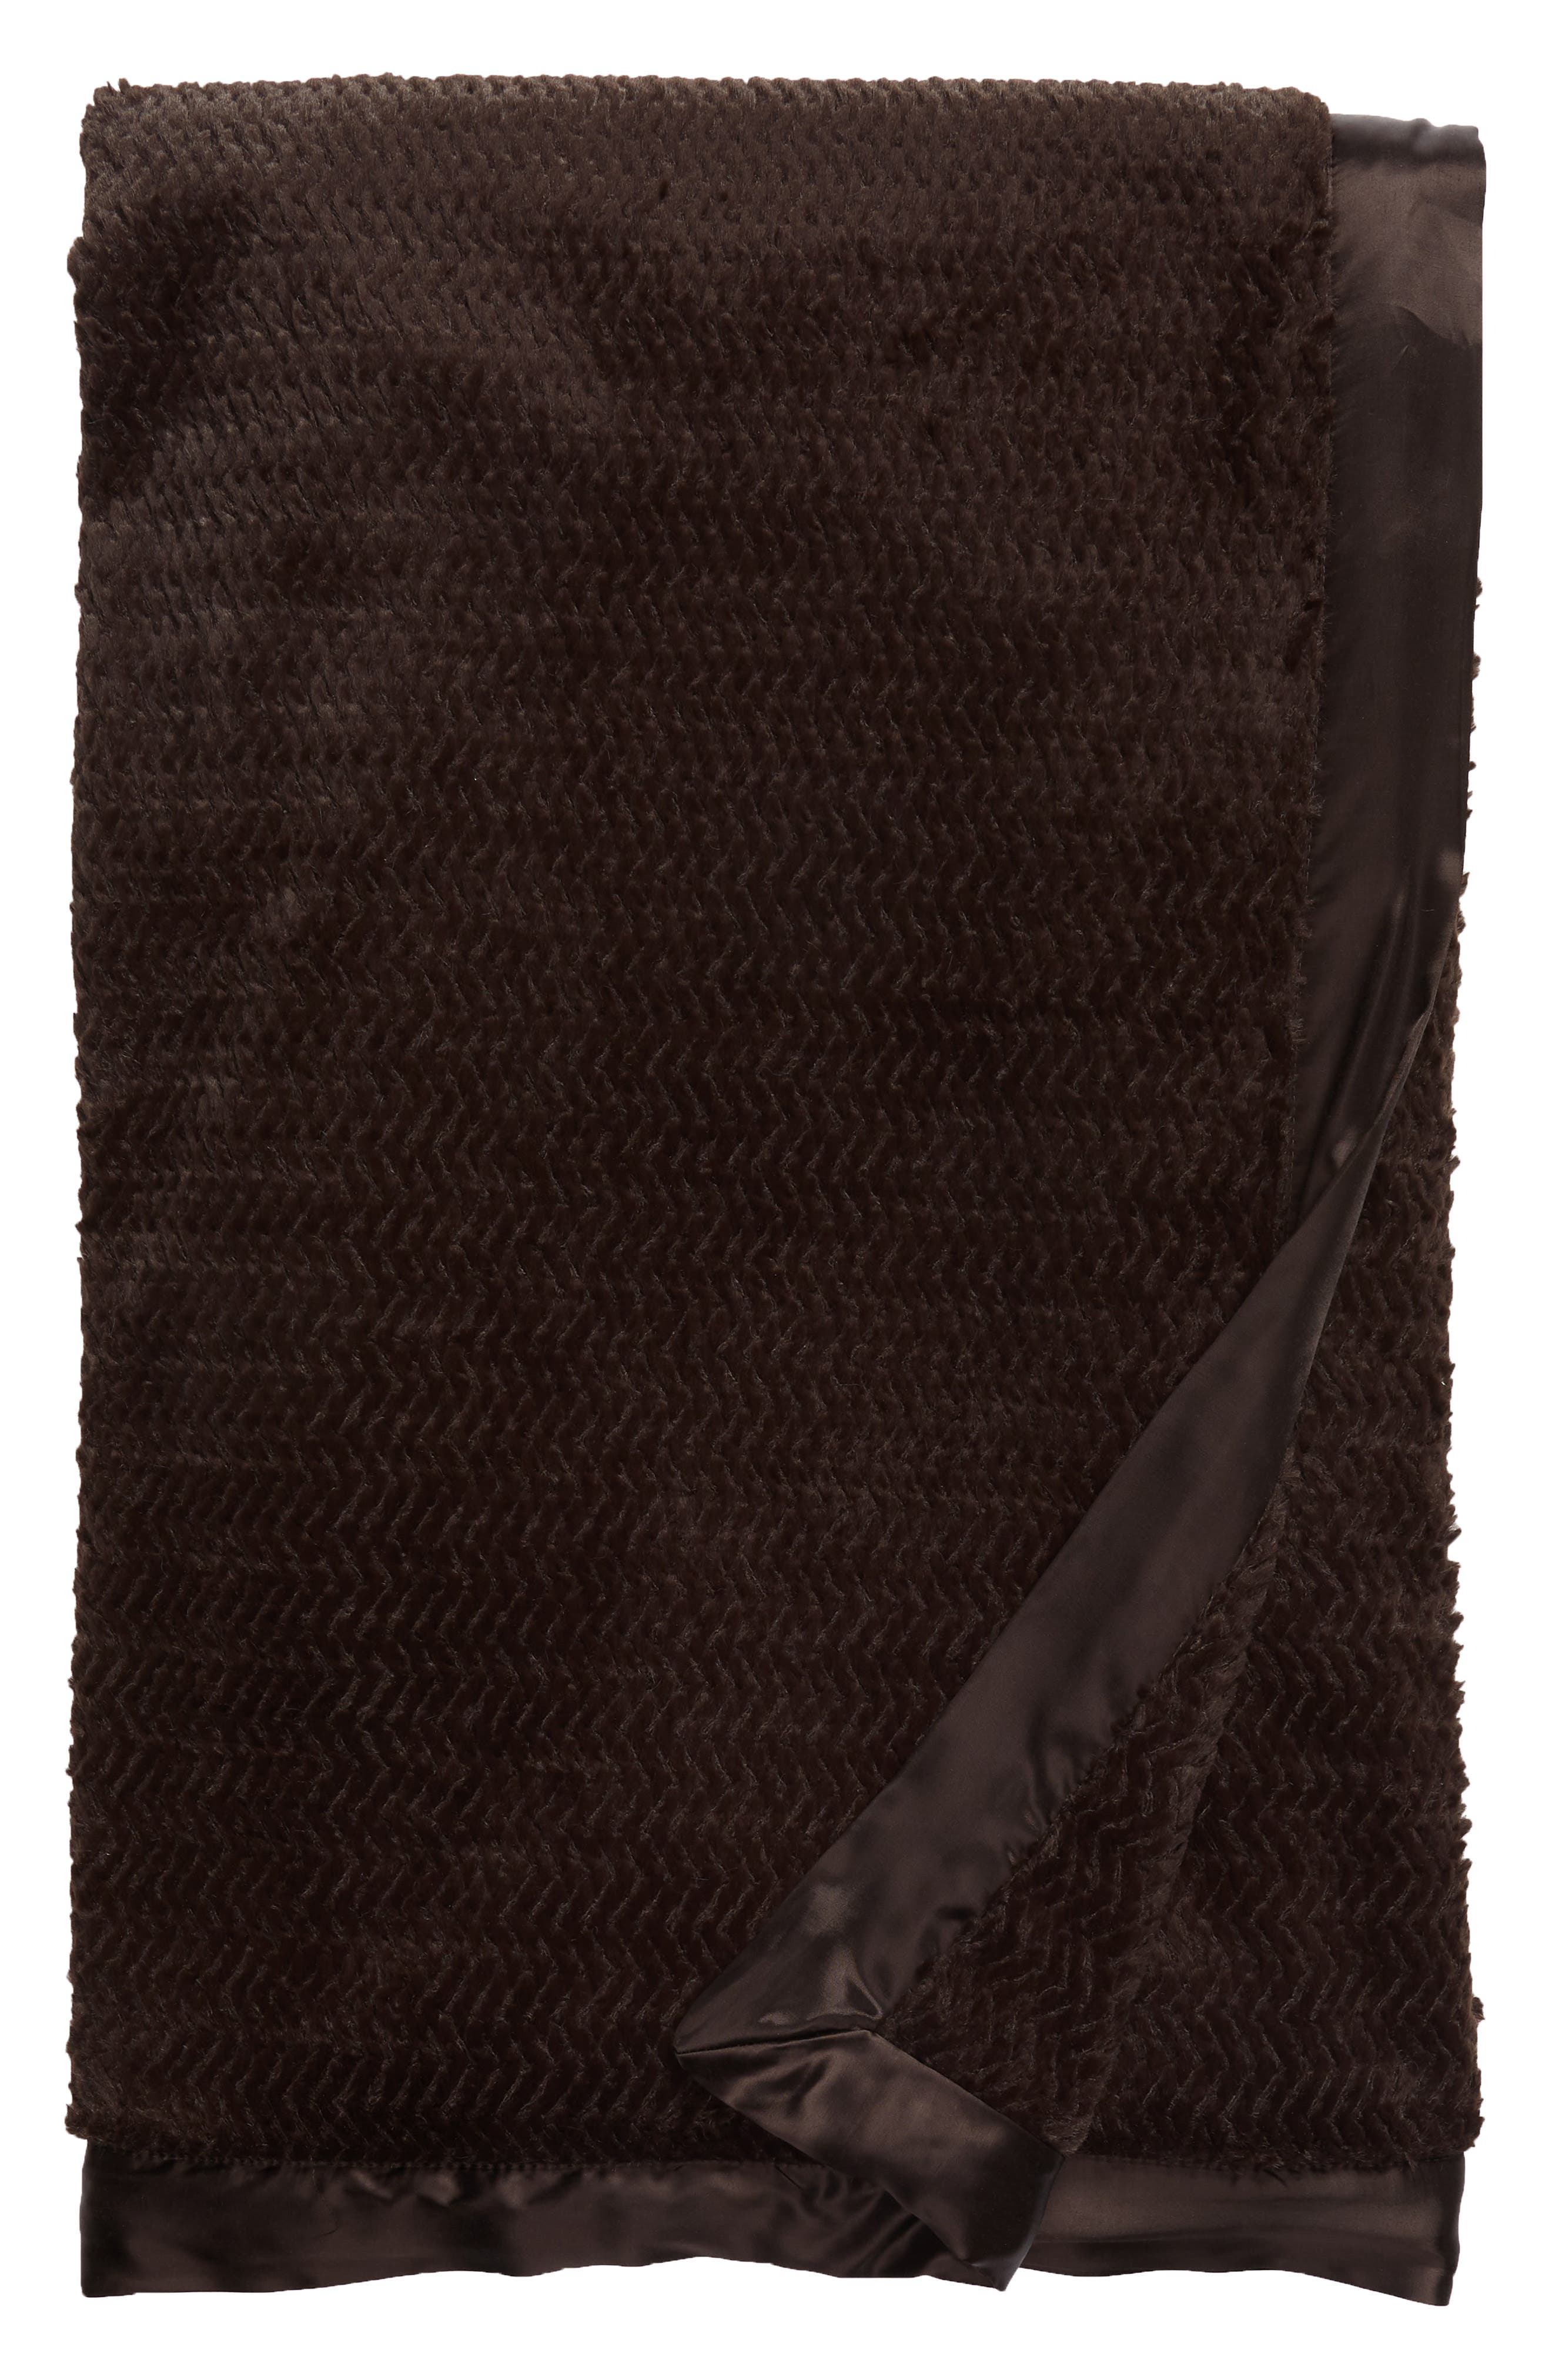 Luxe Twist Throw,                             Main thumbnail 1, color,                             Chocolate